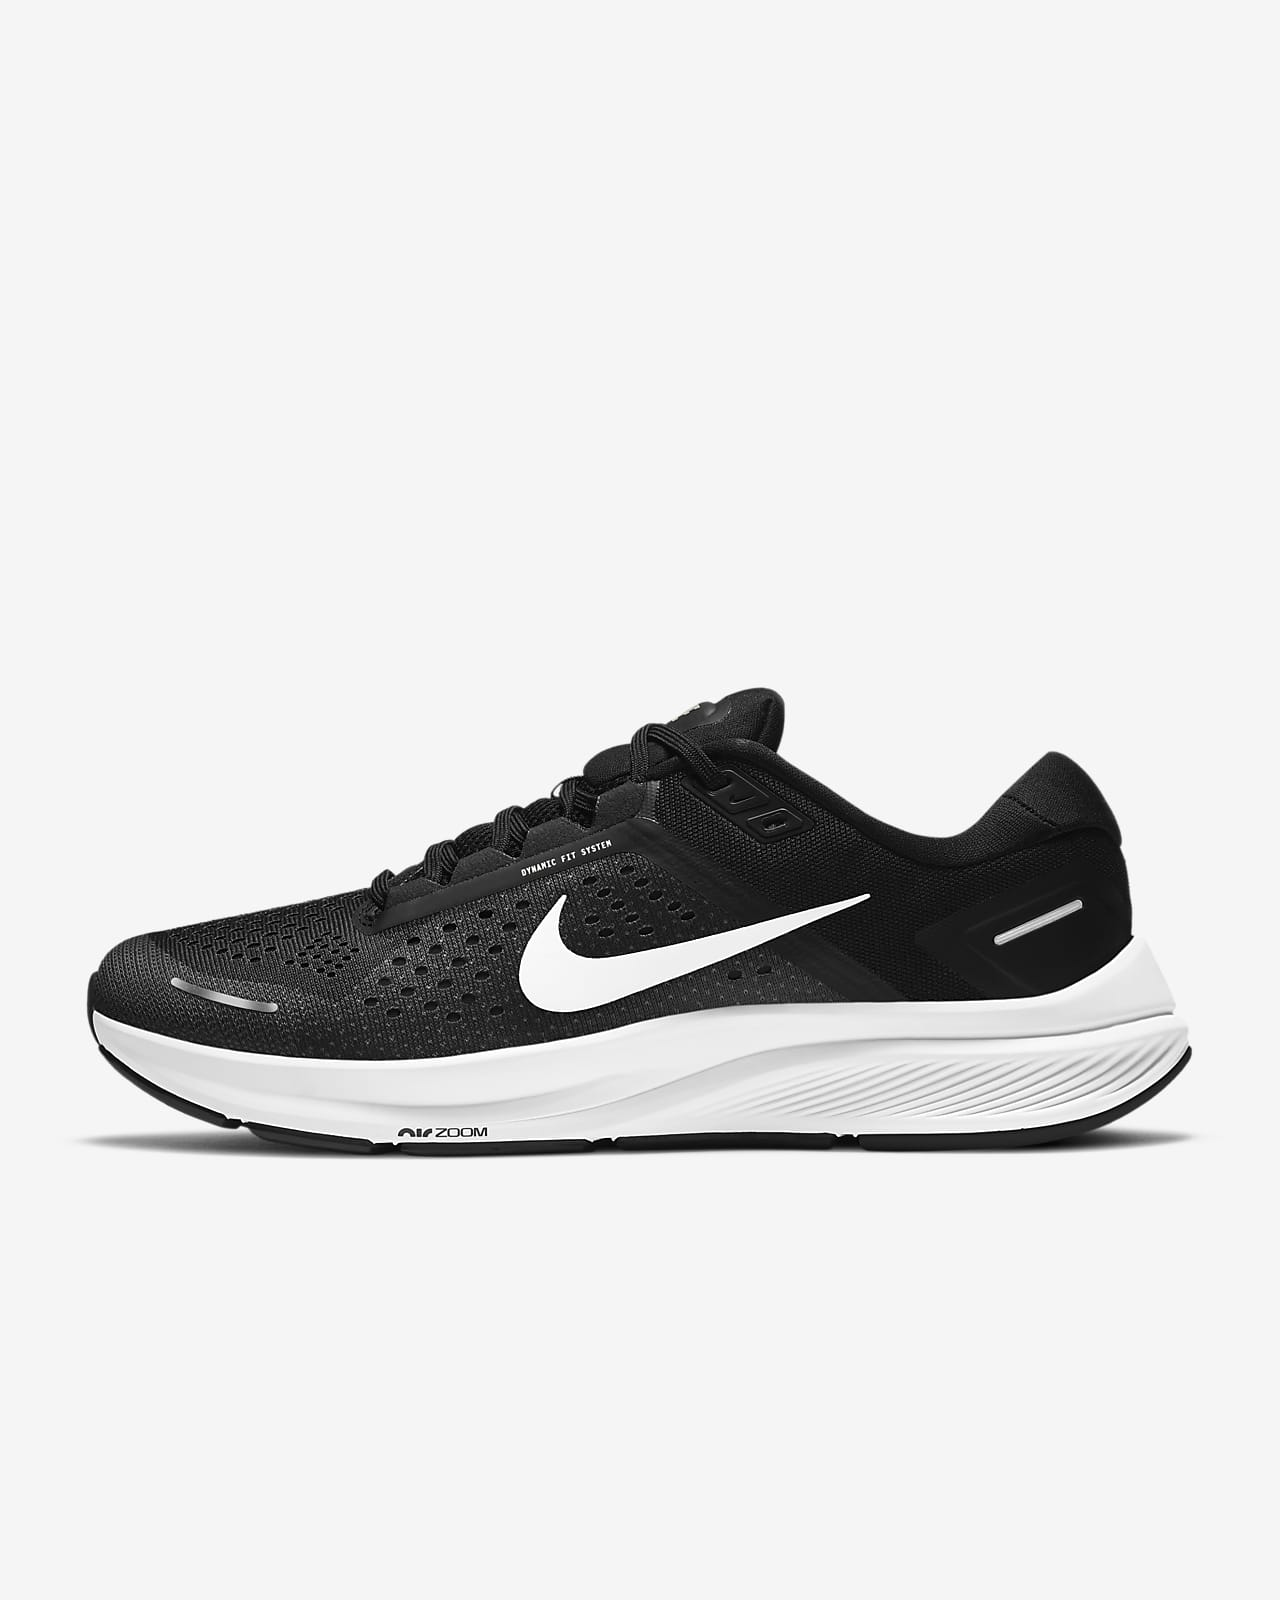 Nike Air Zoom Structure 23 Men's Road Running Shoes